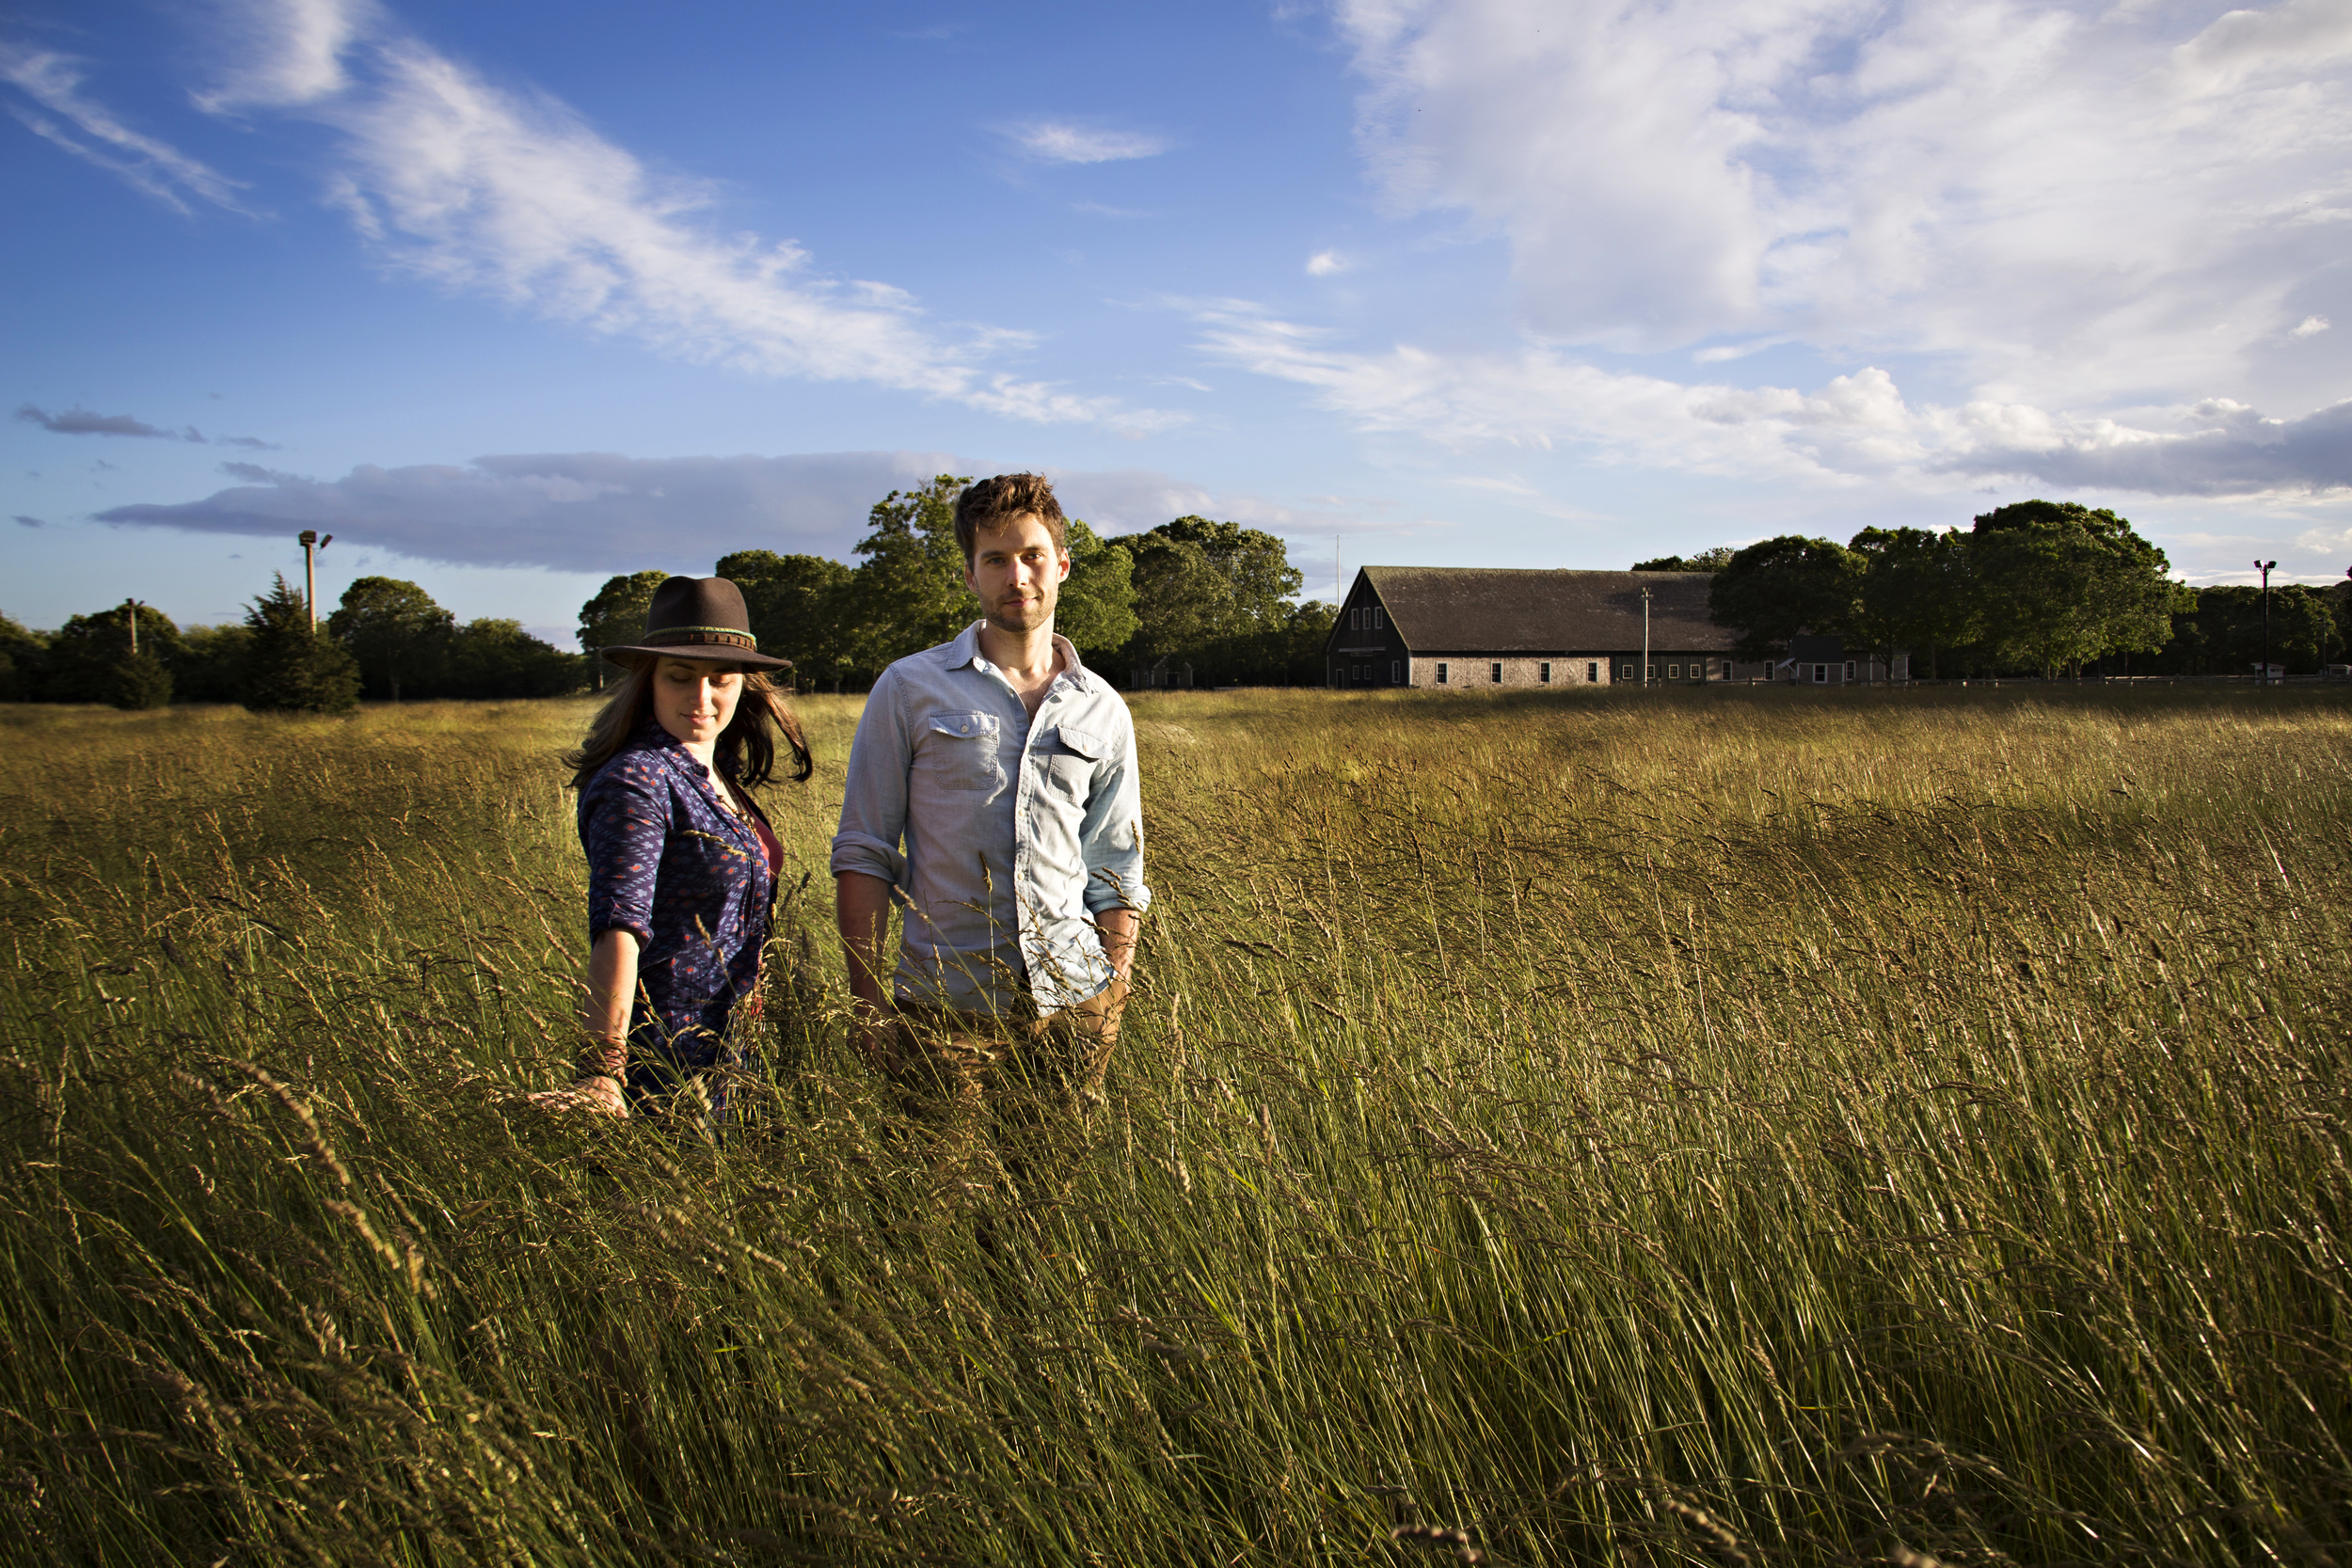 Walker and Danielle were working as artists on the beautiful island of Martha's Vineyard and now travel the country sharing, selling and making their art